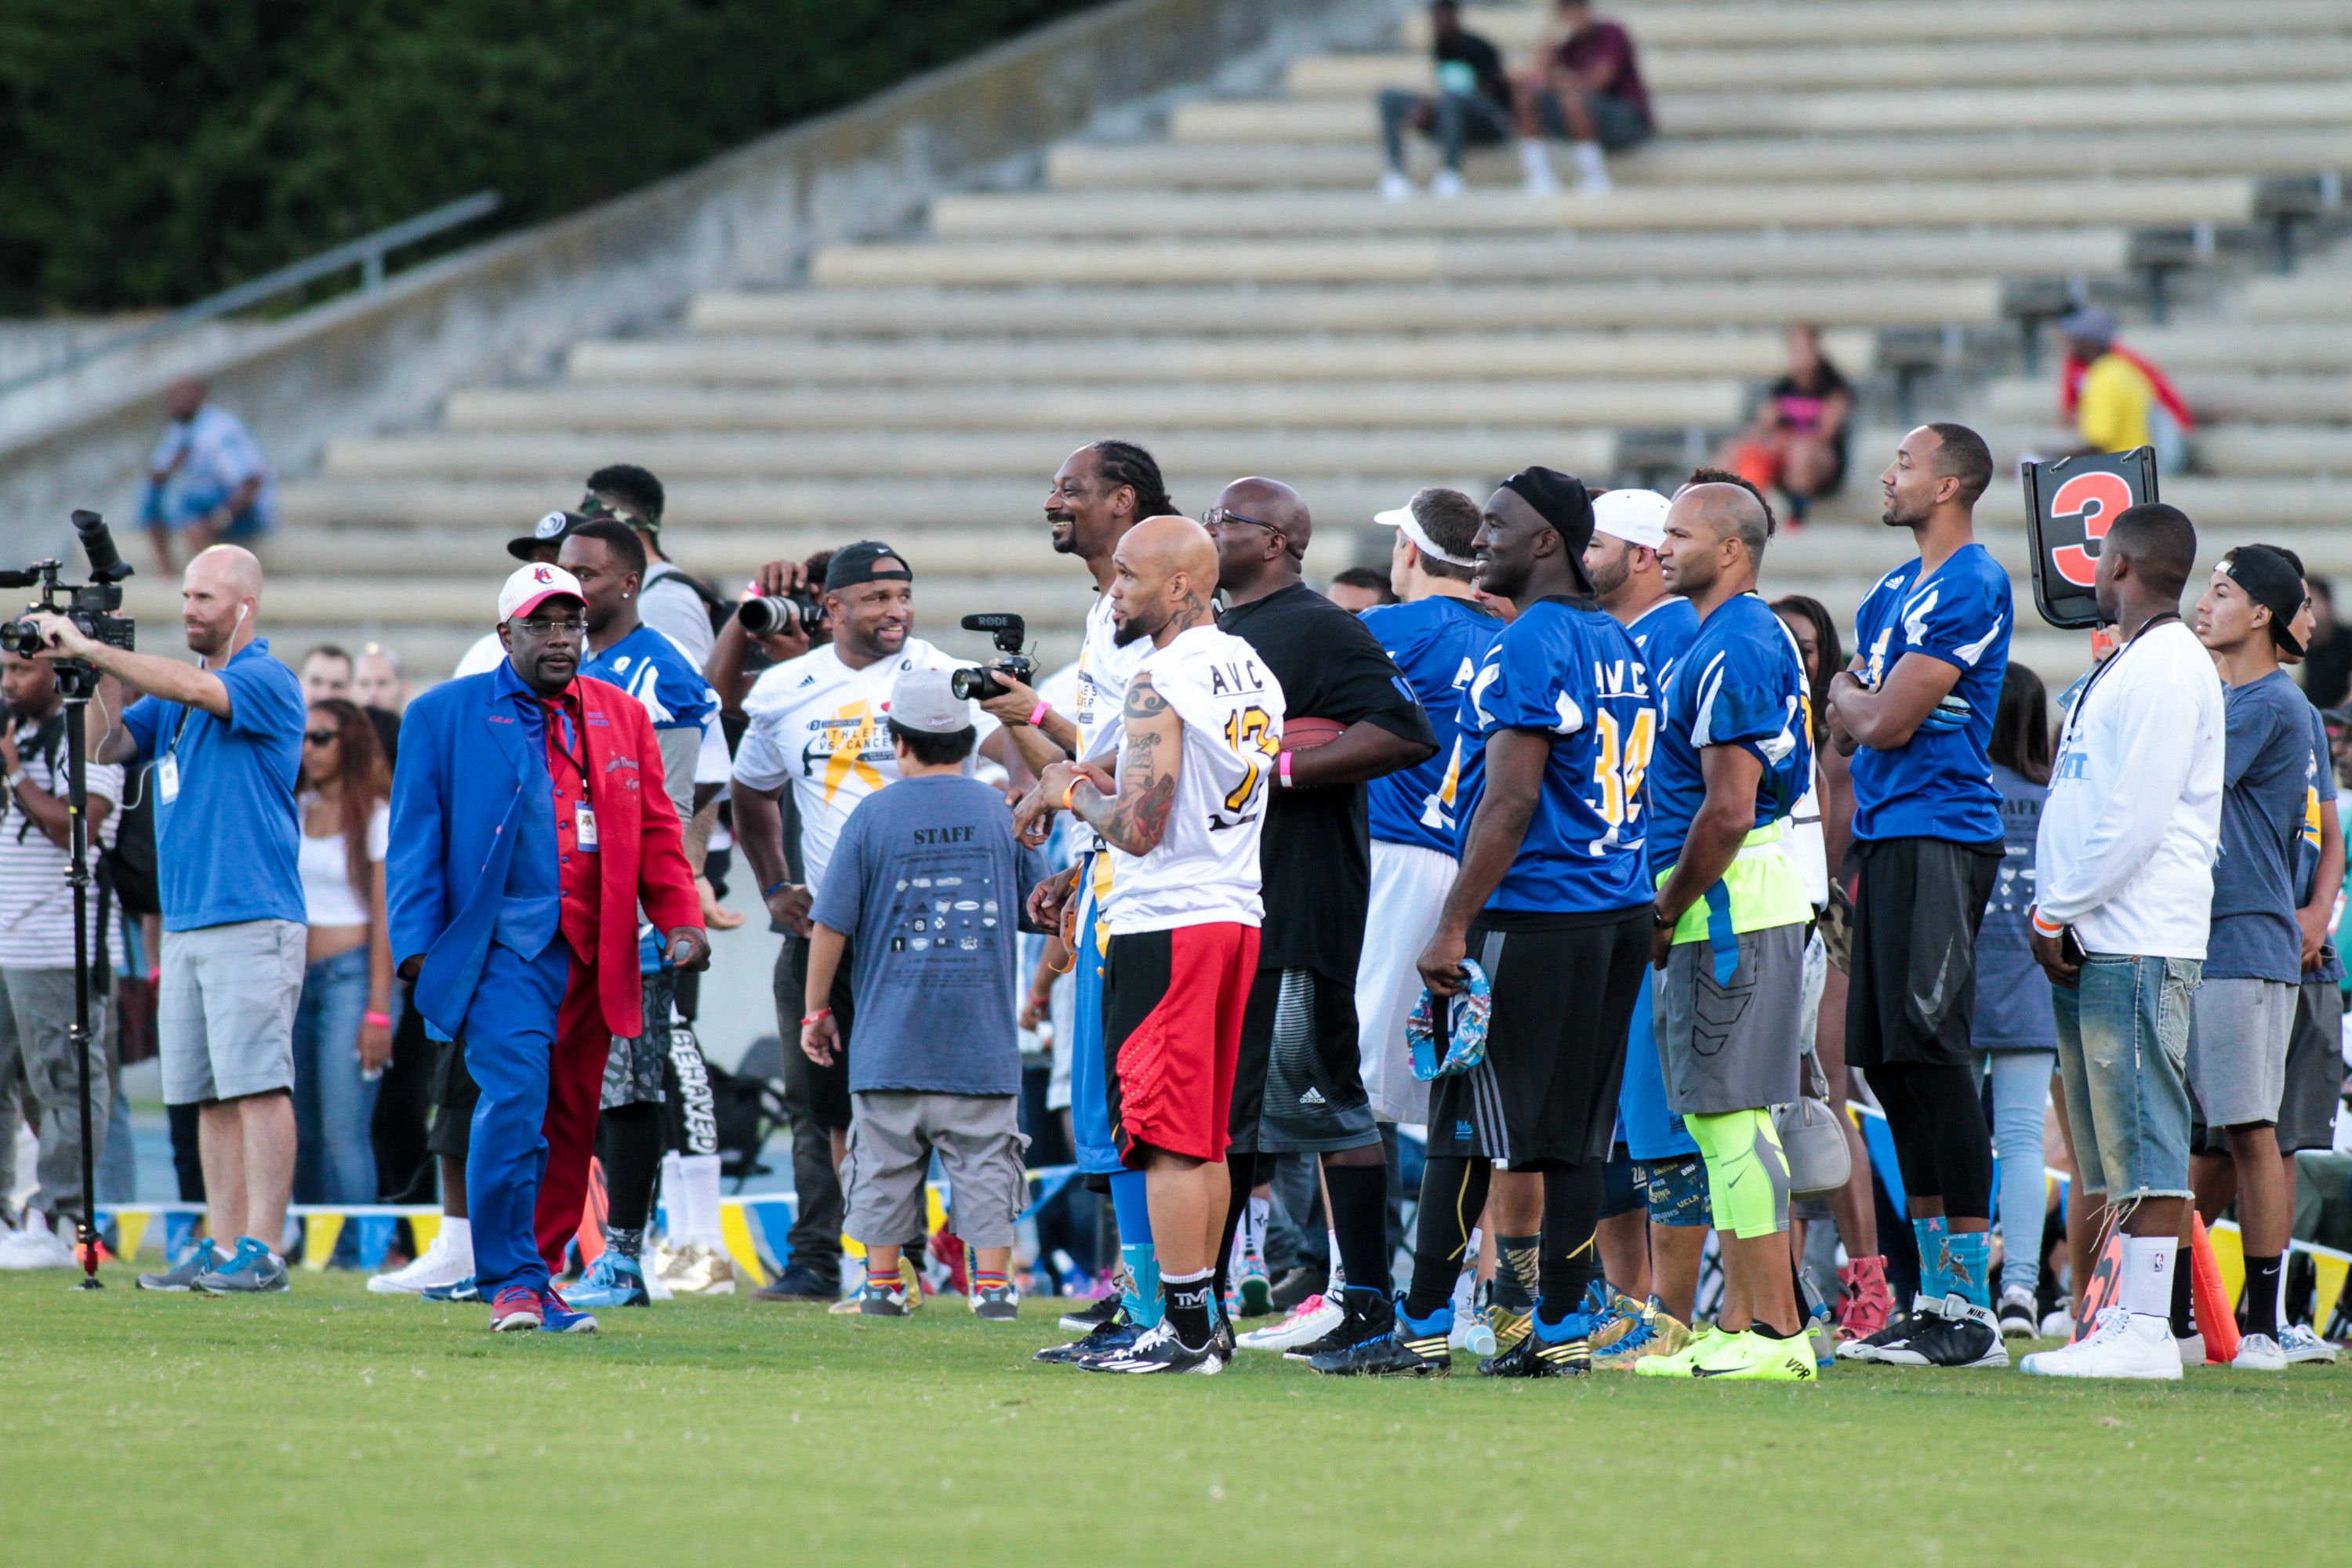 3rd Annual Celebrity Flag Football game hosted by Matt Barnes & Snoop Dogg at Ucla Drake Stadium